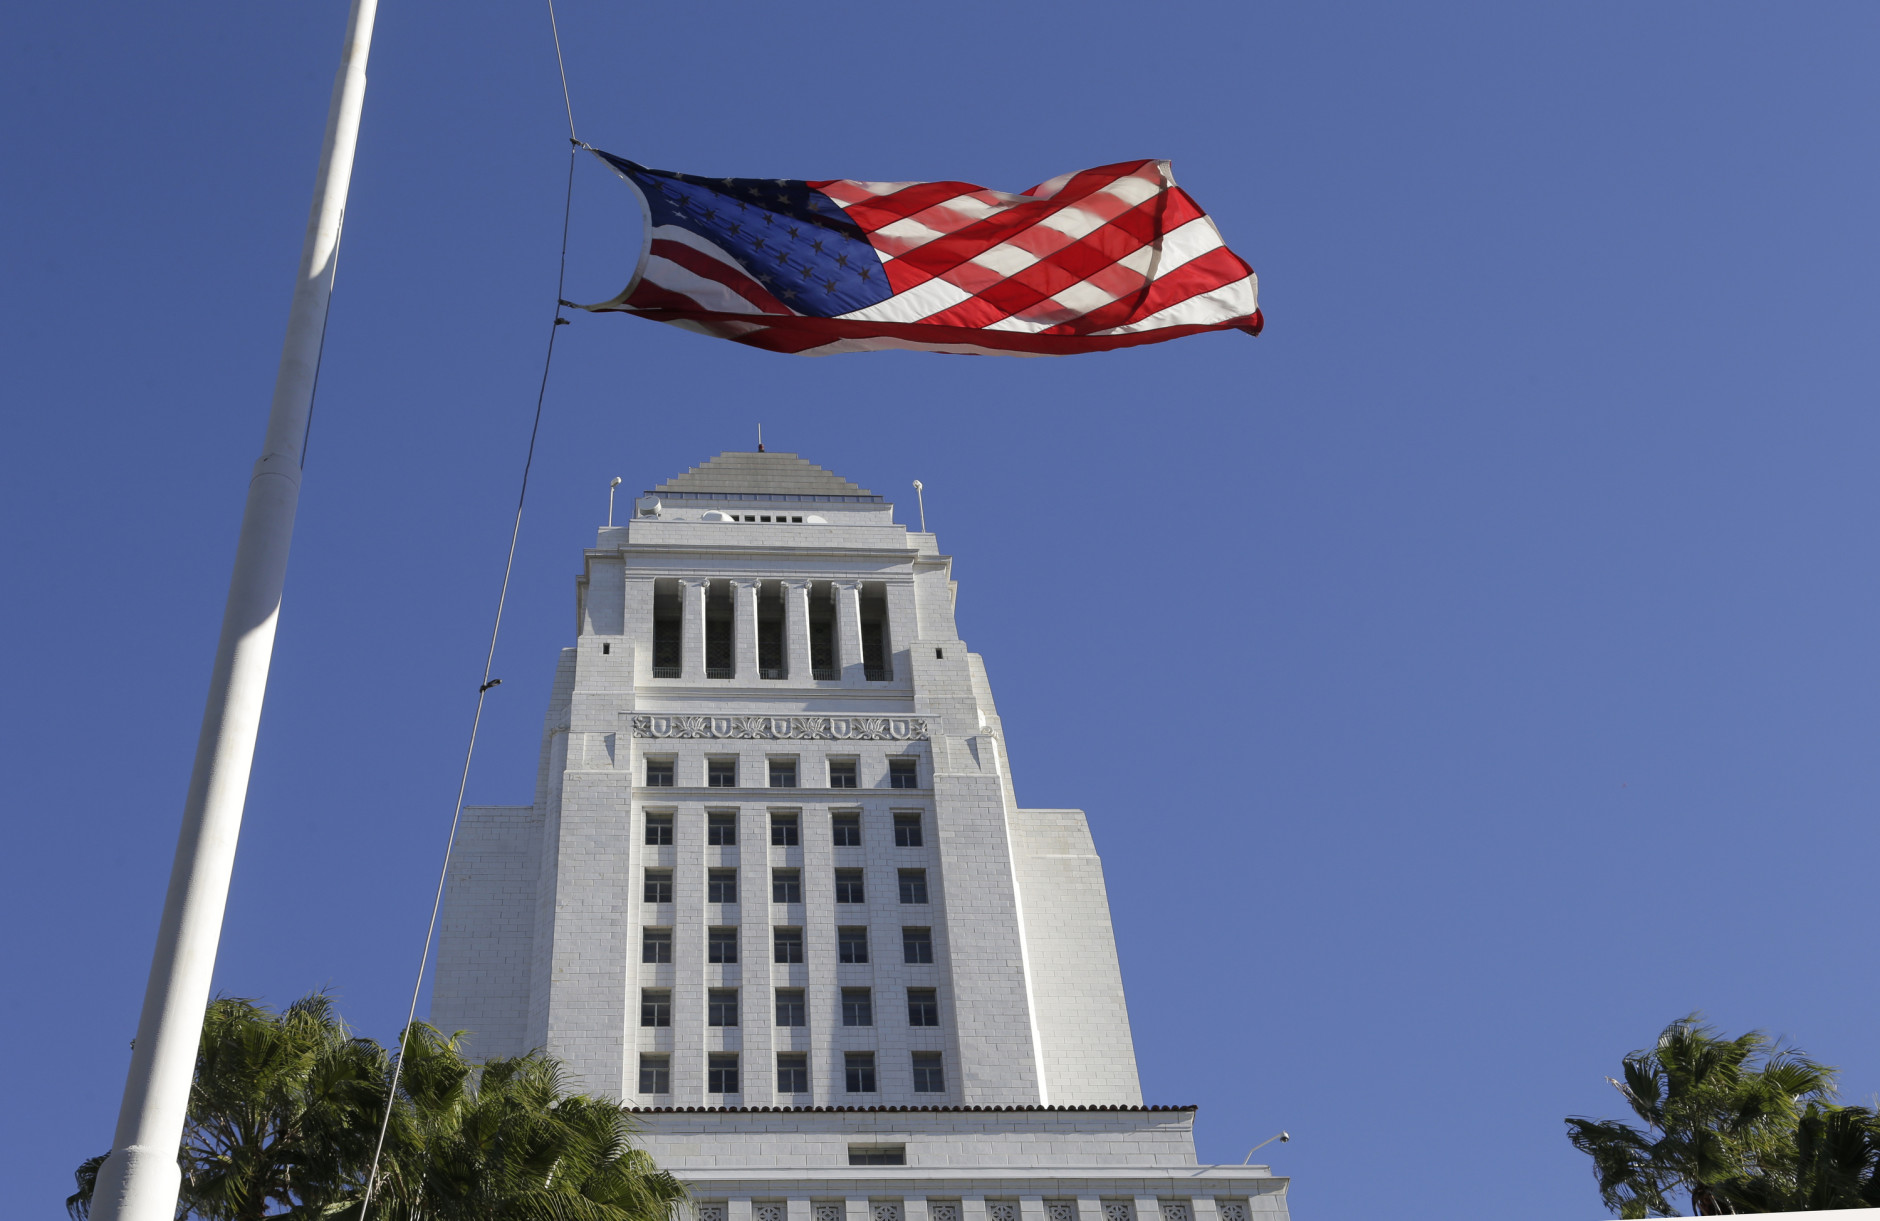 An American flag flies half-staff in a strong wind at Los Angeles City Hall on Monday, Nov. 16, 2015. The winds followed a front that moved through California during the weekend, dropping rain and snow while lowering temperatures.  Flags fly at half-staff in Los Angeles in honor of victims of terrorist attacks in Paris. (AP Photo/Nick Ut)